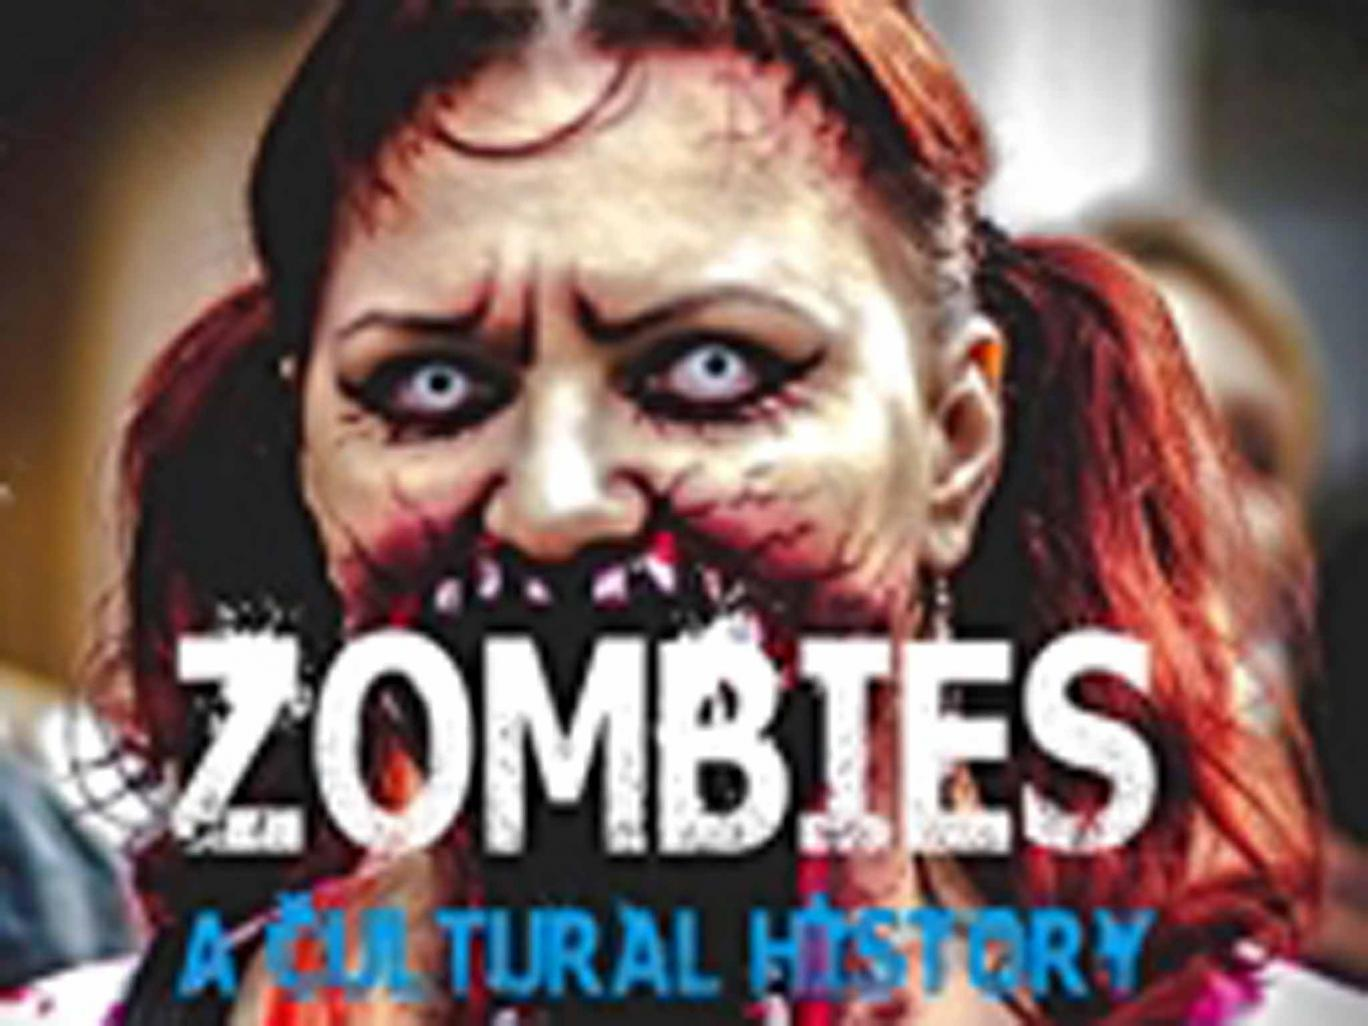 the history of zombies Zombies are big news at the moment, but do you know how it all started read this to find out about where zombie mania comes from.